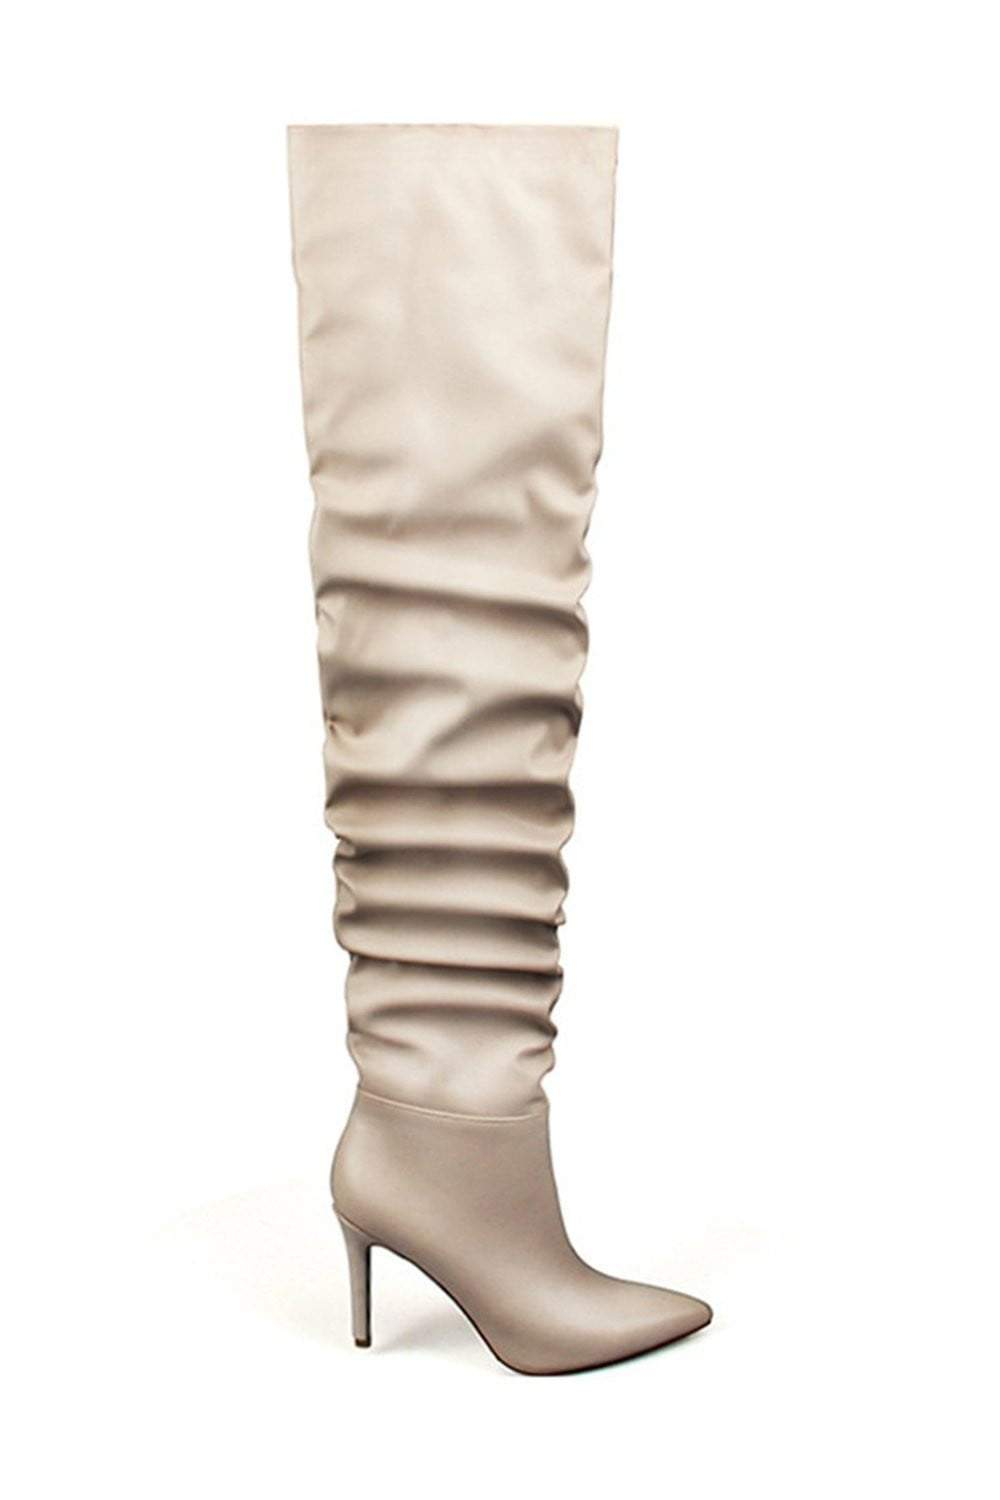 Nude Ruched Stiletto Thigh High Boots (2335395971131)